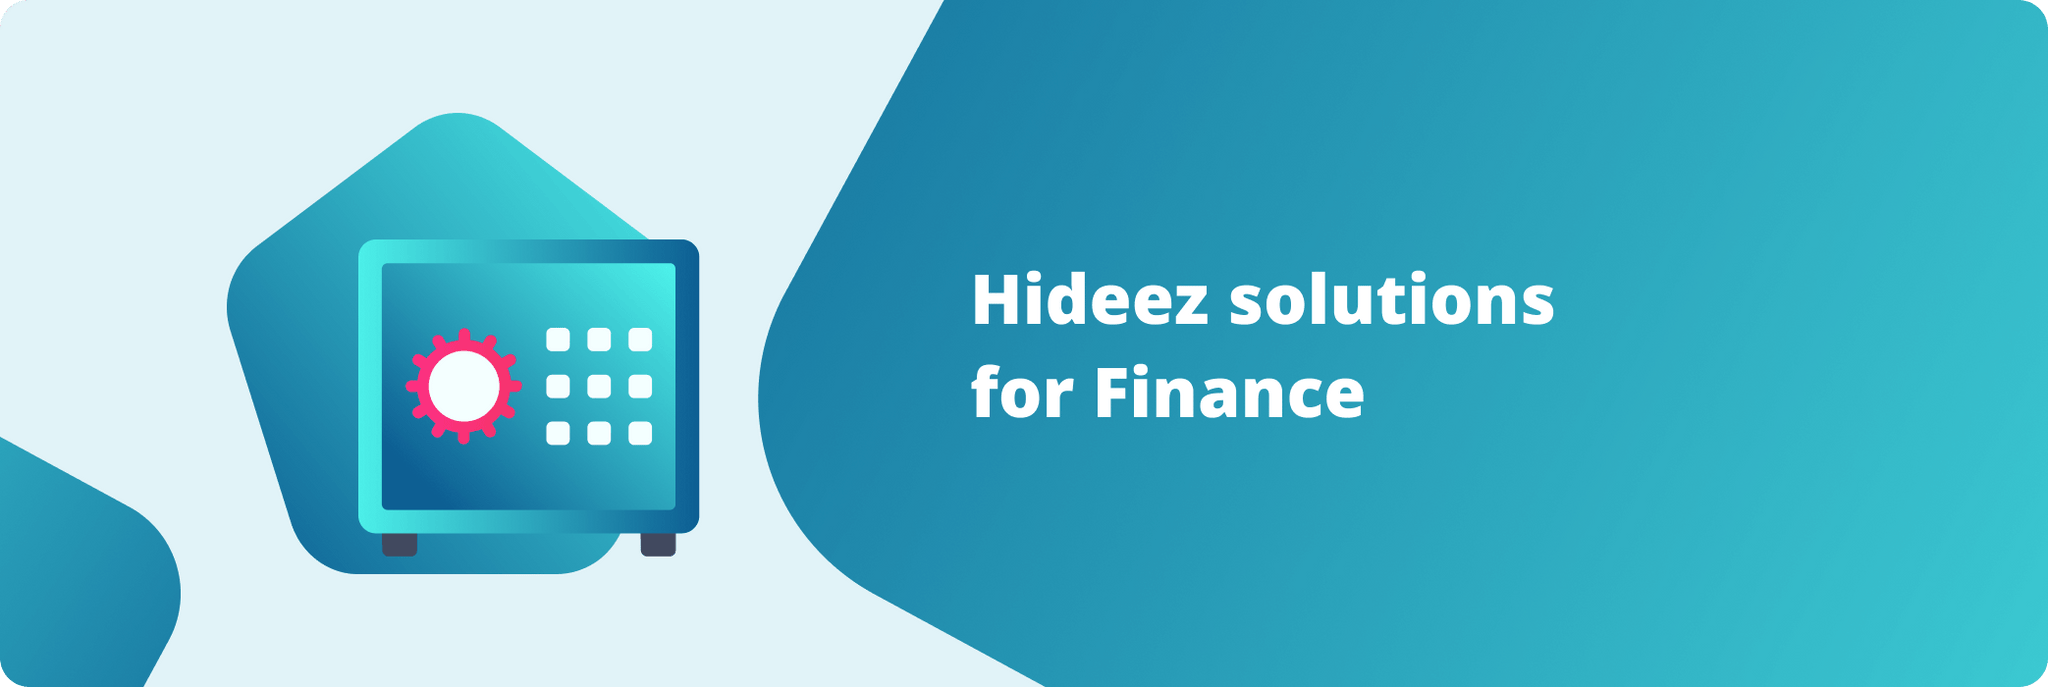 Hideez solutions for Finance